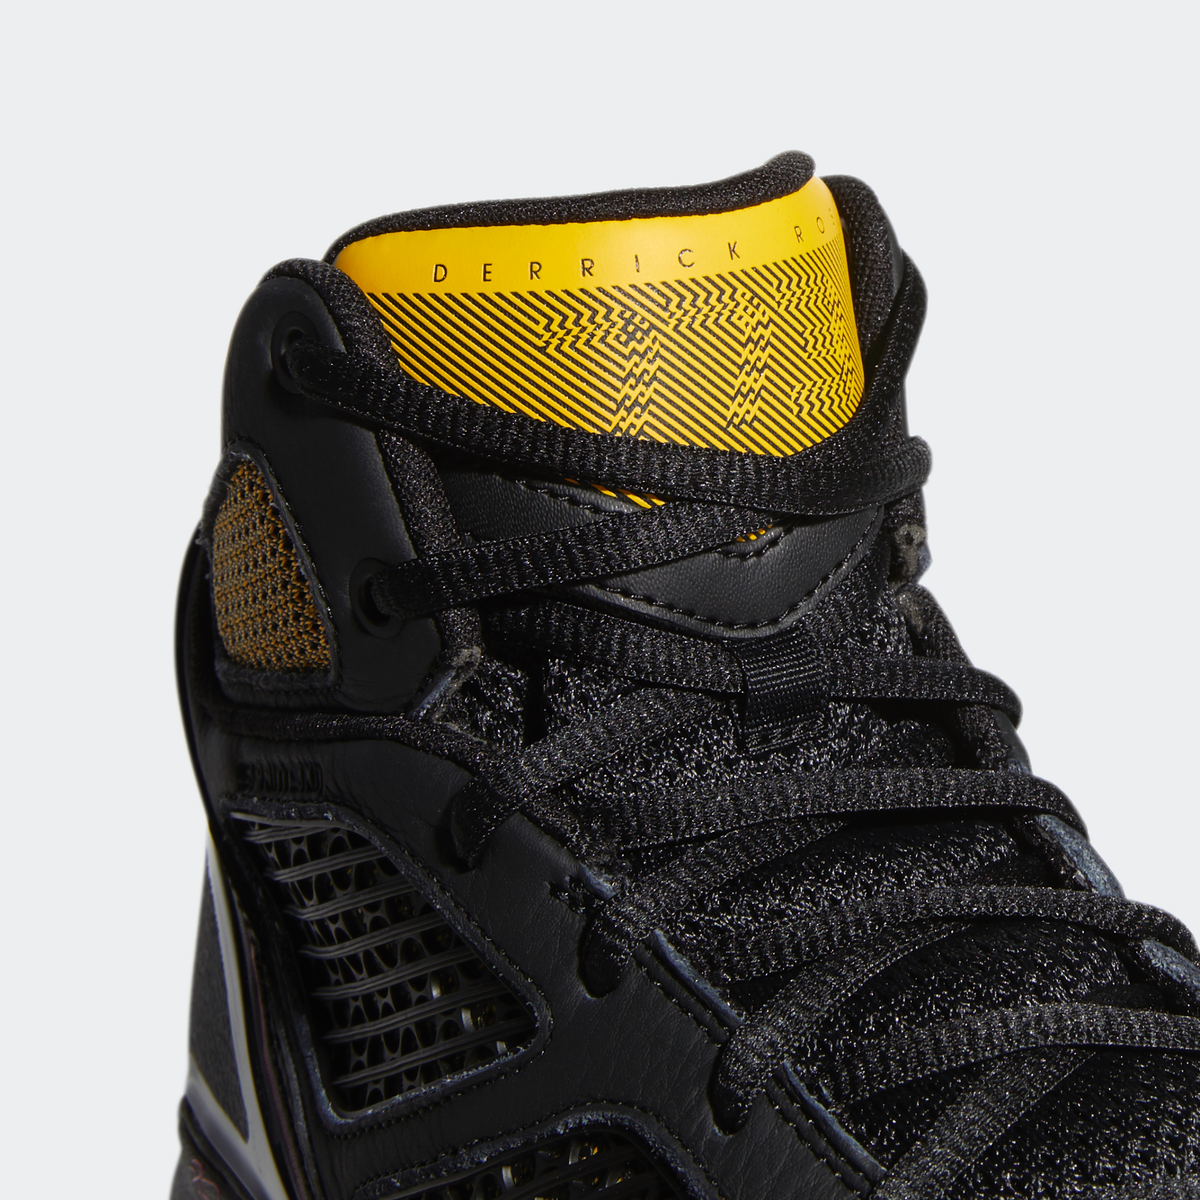 The adidas D Rose 1.5 Retro to Come in 'Black/Yellow' - WearTesters